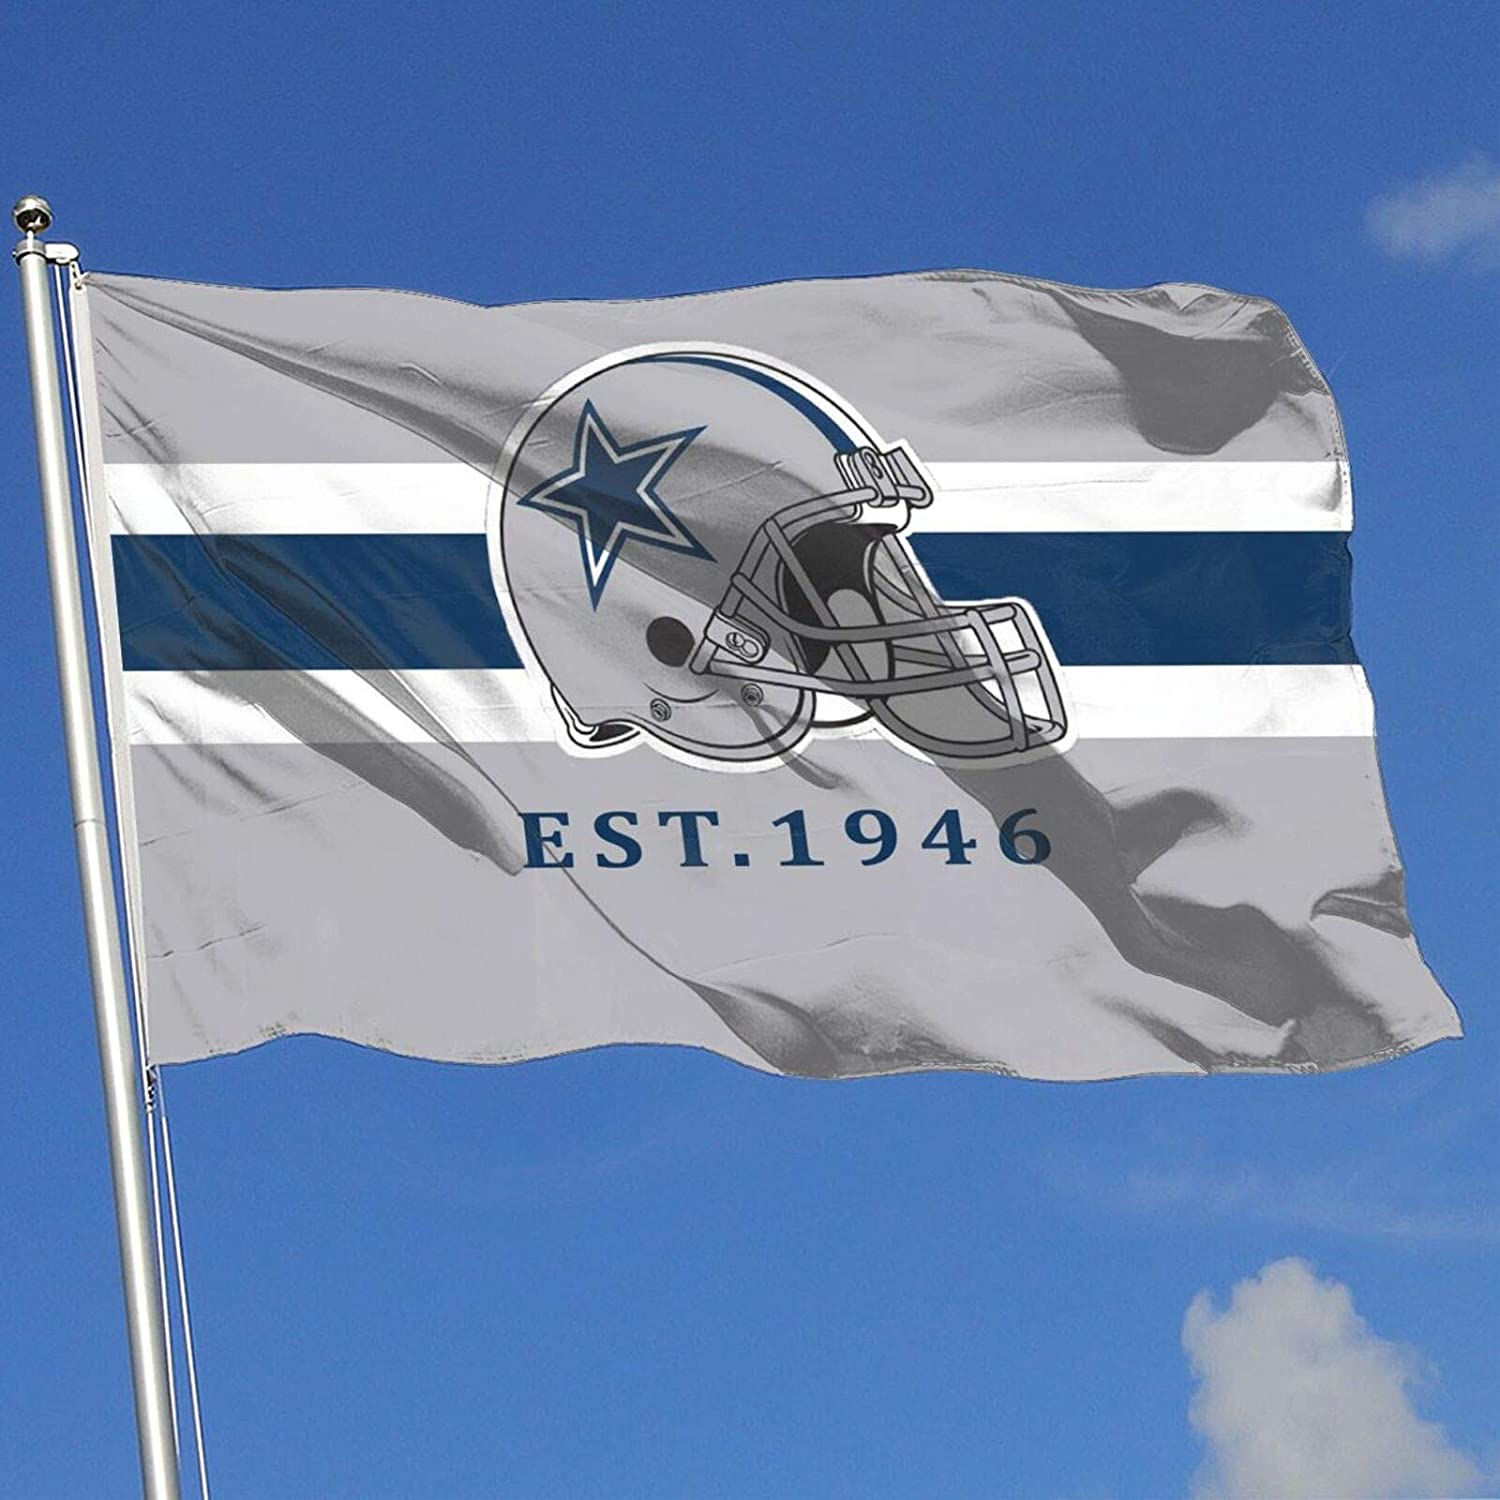 Dallas Cowboys Garden Flags House Yard Decoration Sports Banner for Home 3x5 FT